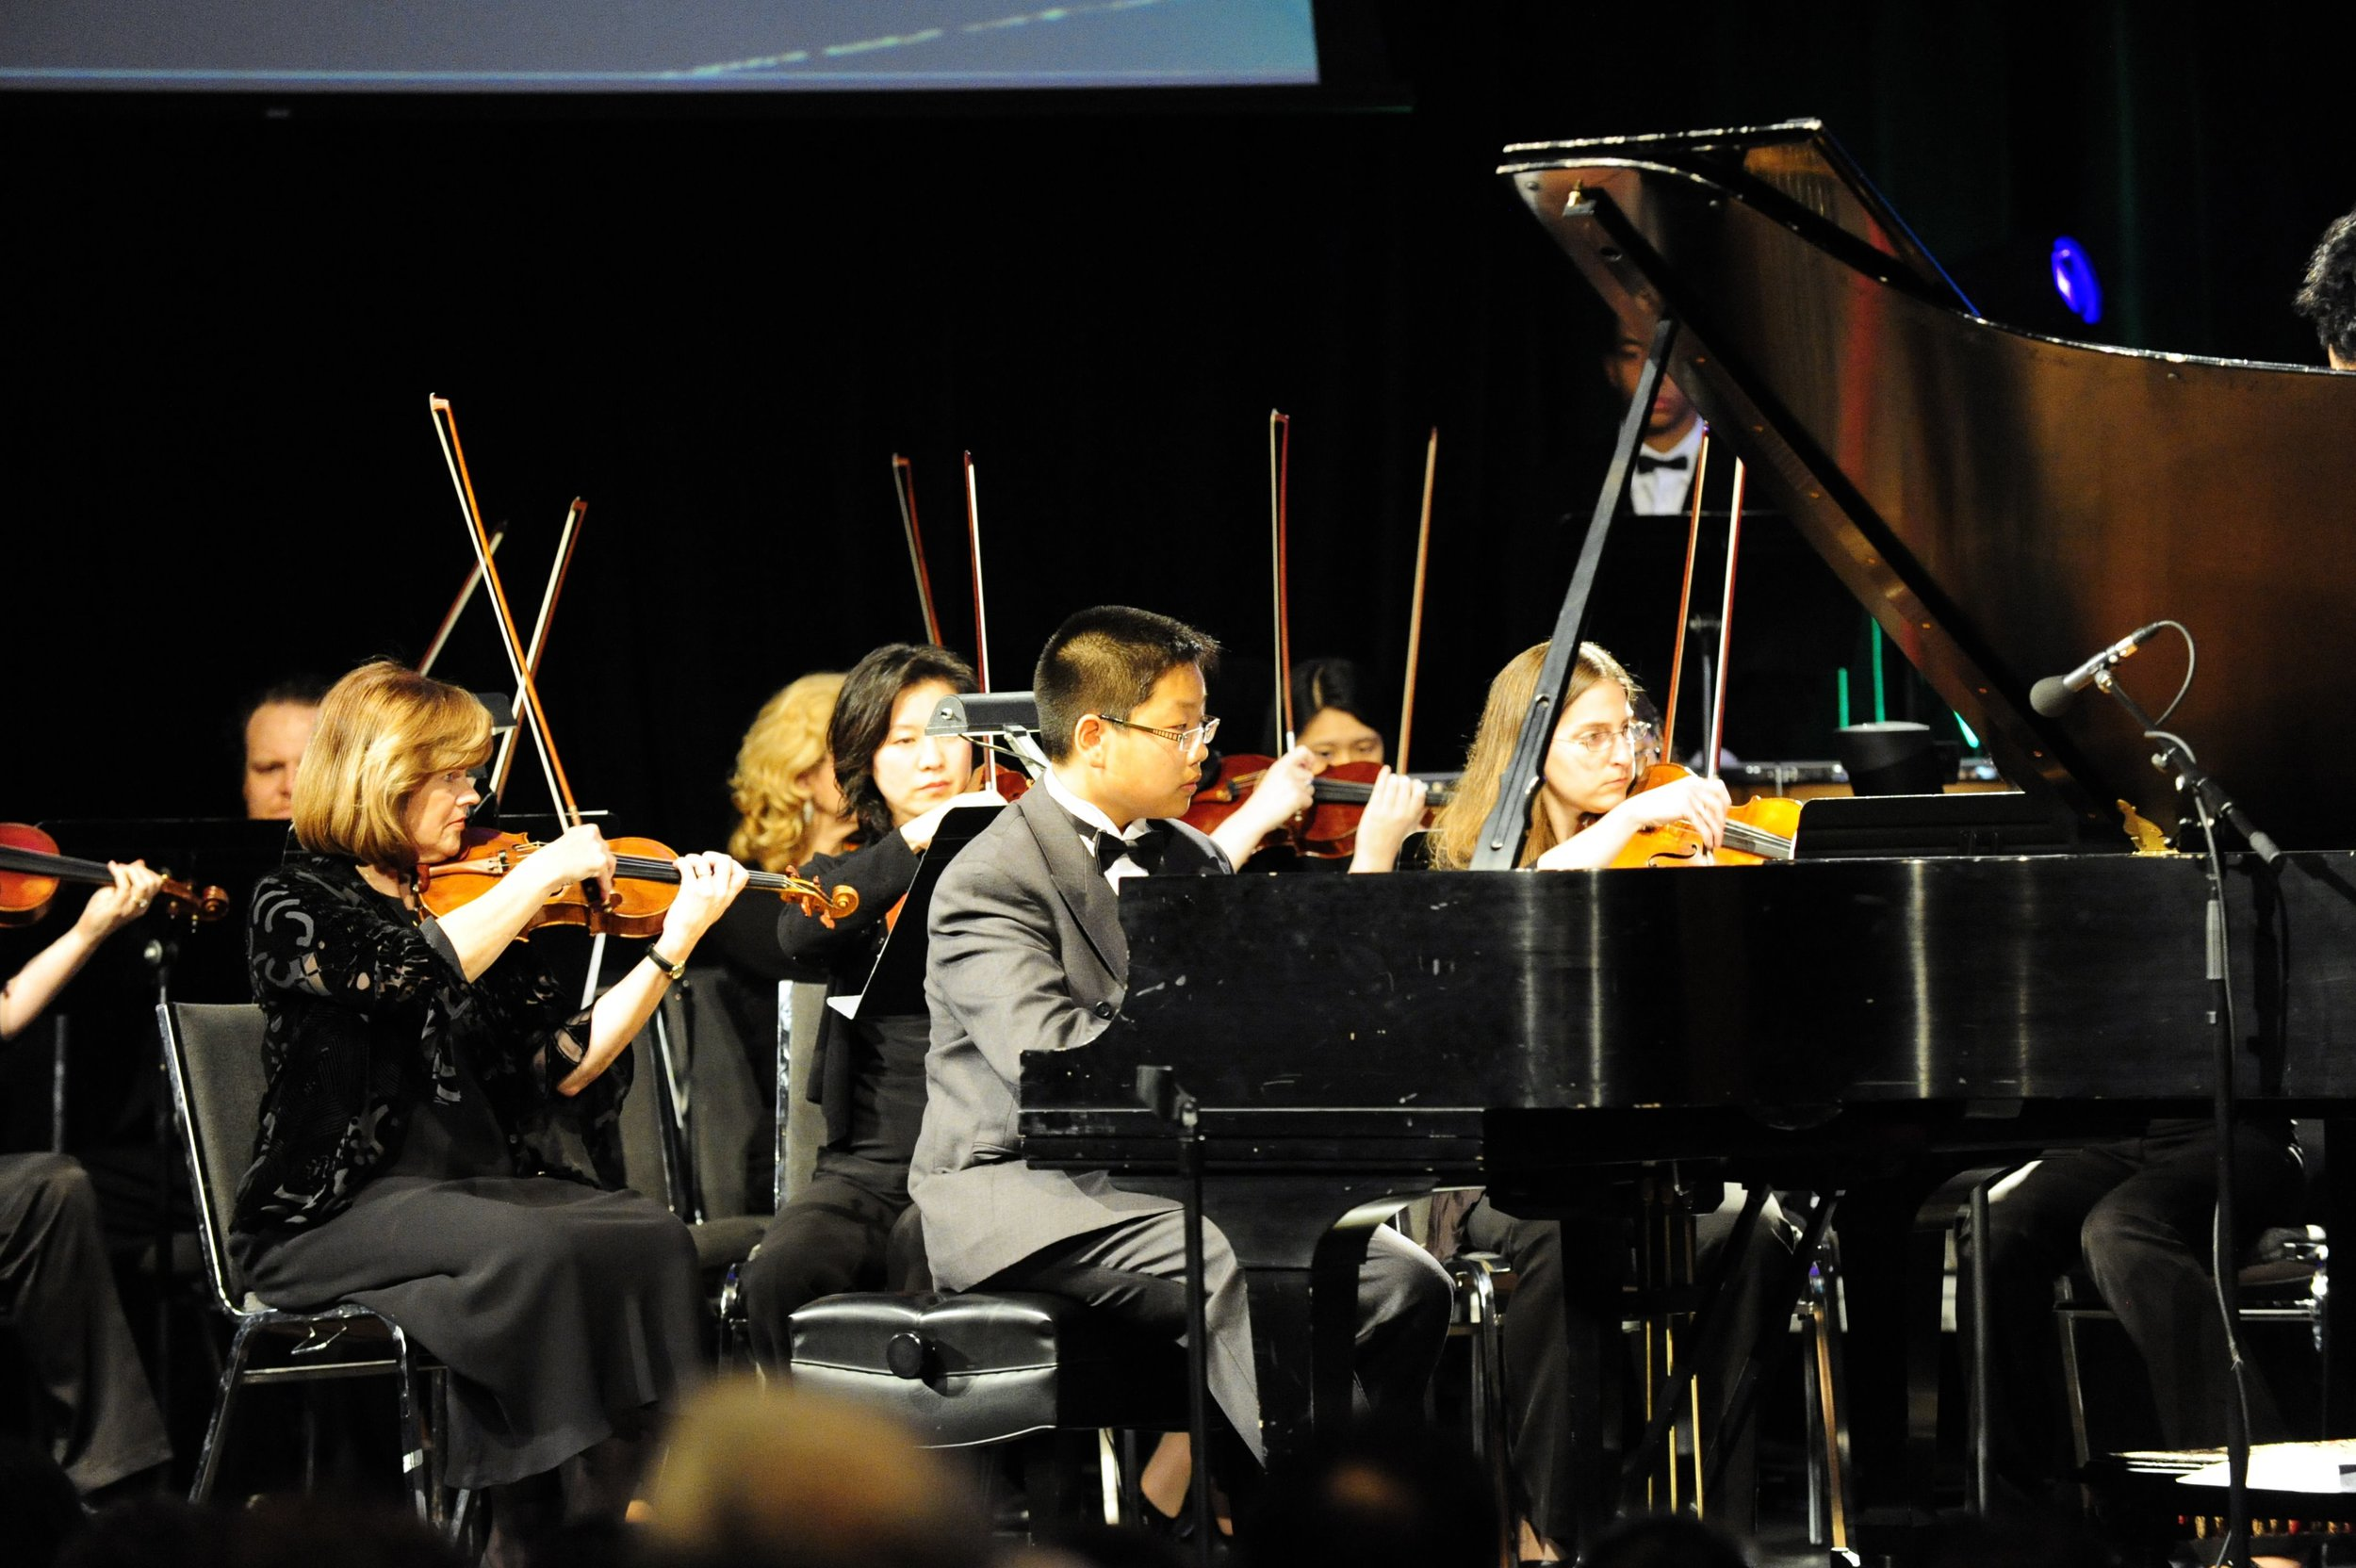 Kevin Kong performing Beethoven Piano Concerto No. 3 in C minor